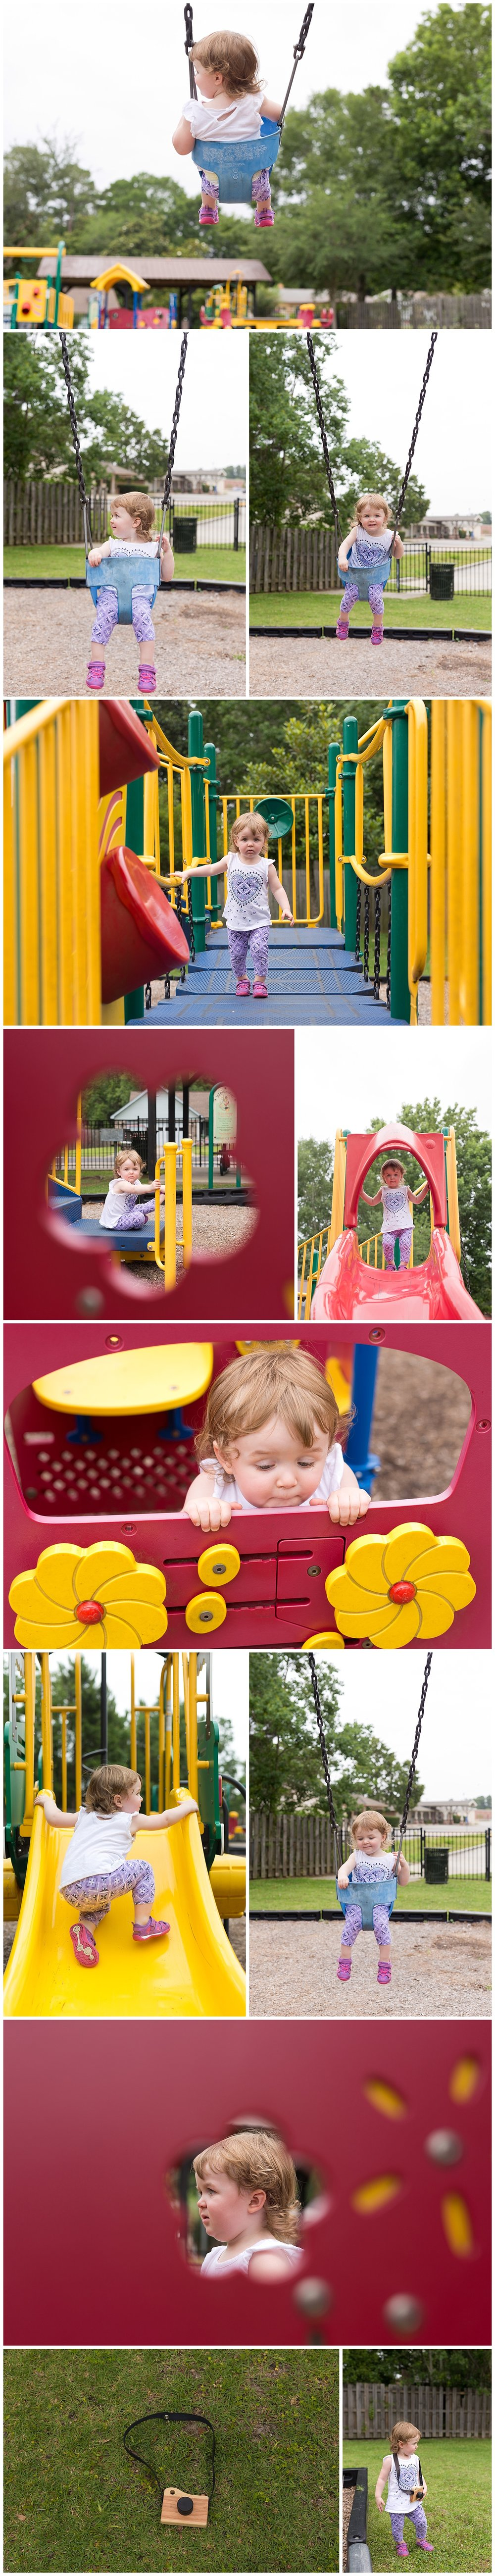 Ocean Springs family photographer - little girl on playground in Fort Bayou